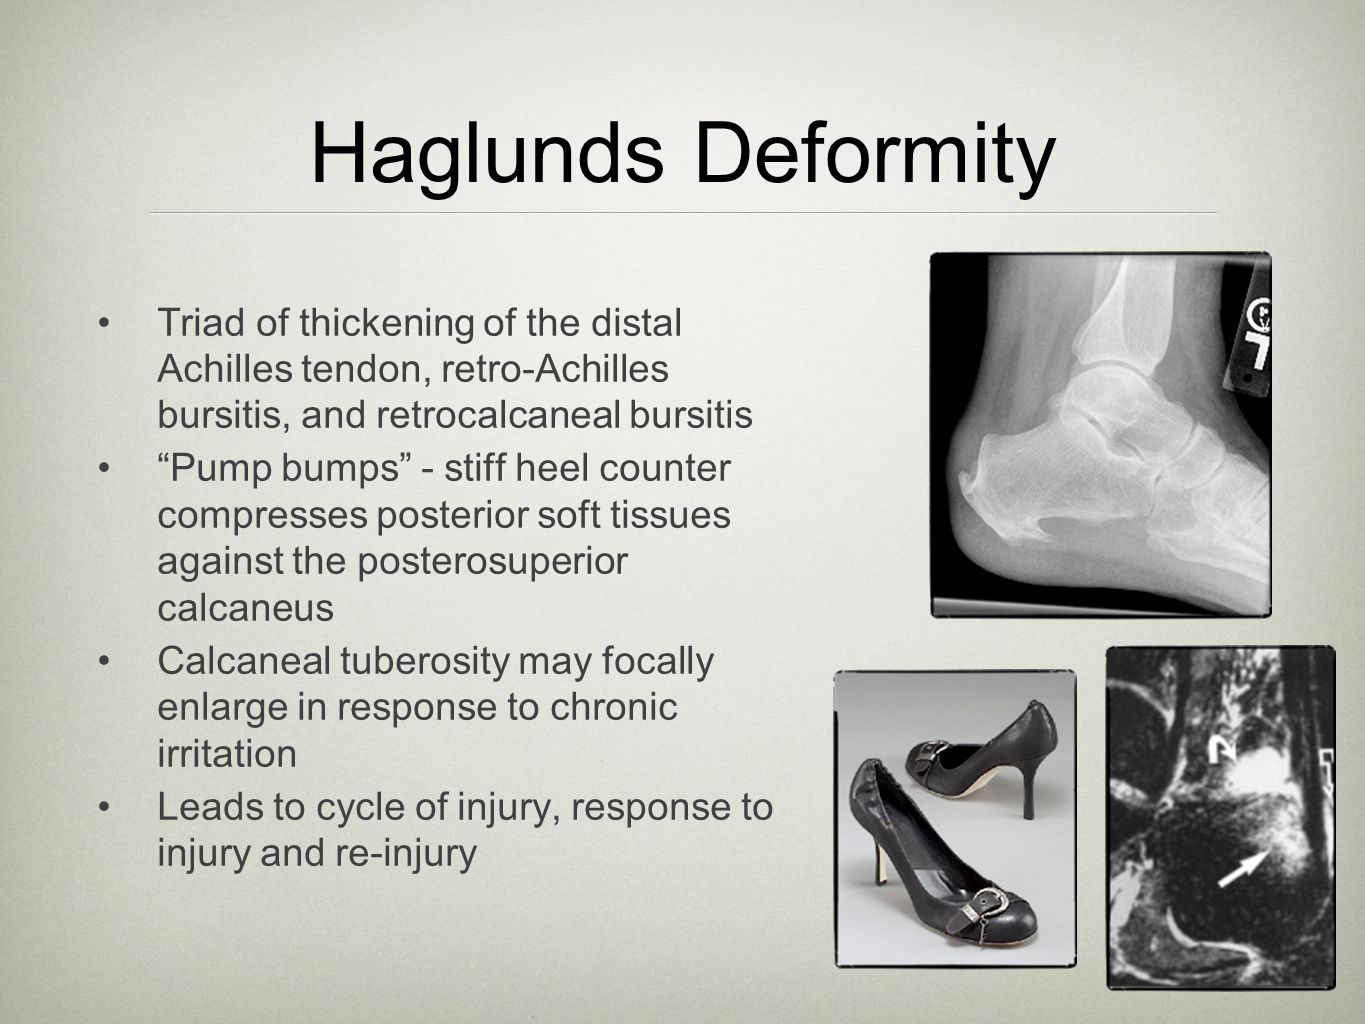 Haglunds Deformity Triad of thickening of the distal Achilles tendon, retro-Achilles bursitis, and retrocalcaneal bursitis.